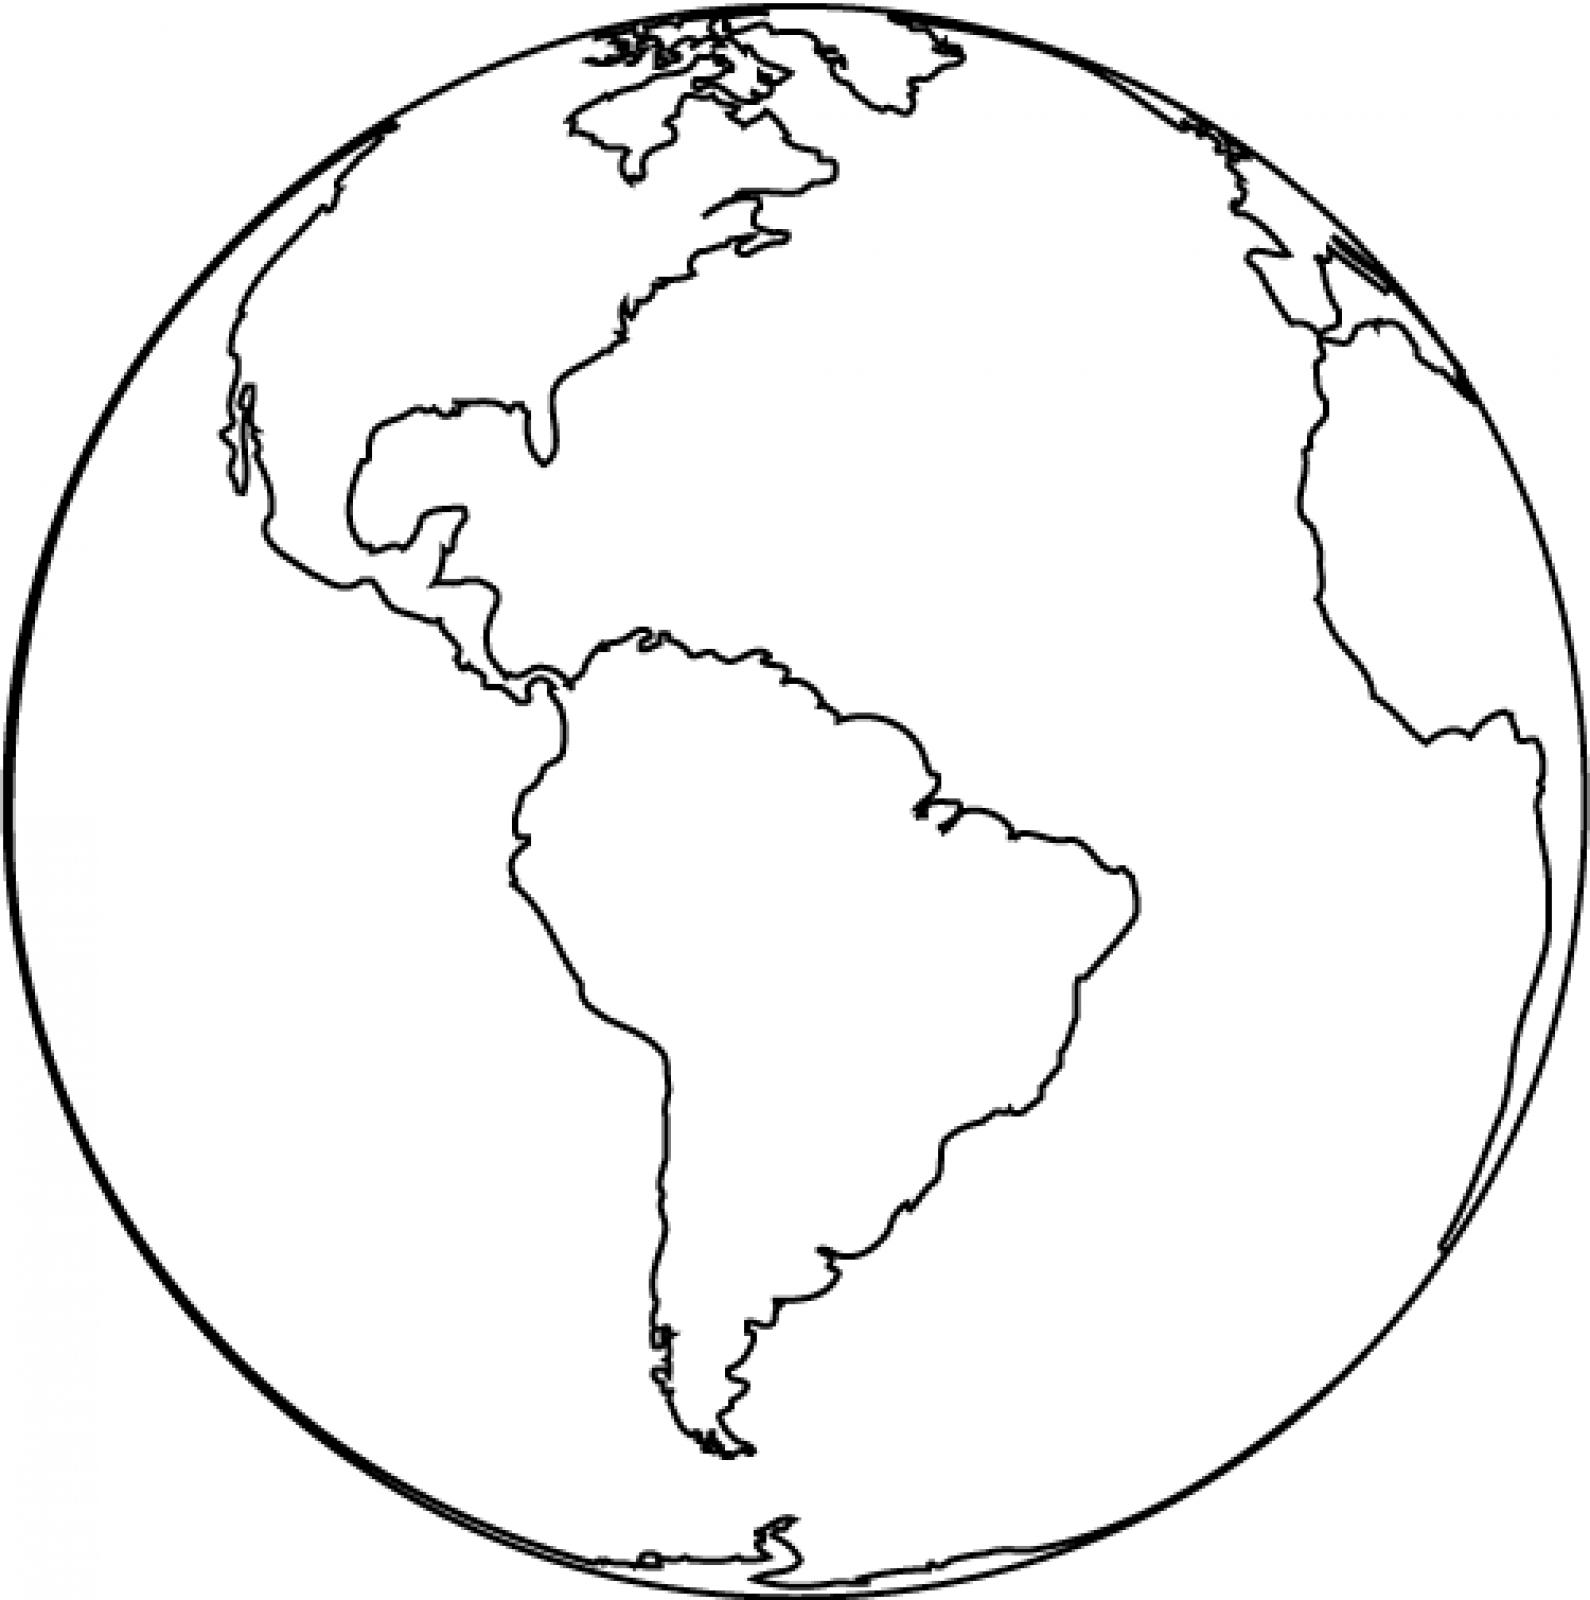 1590x1600 In Earth Coloring Page On With Hd Resolution 1590x1600 Pixels